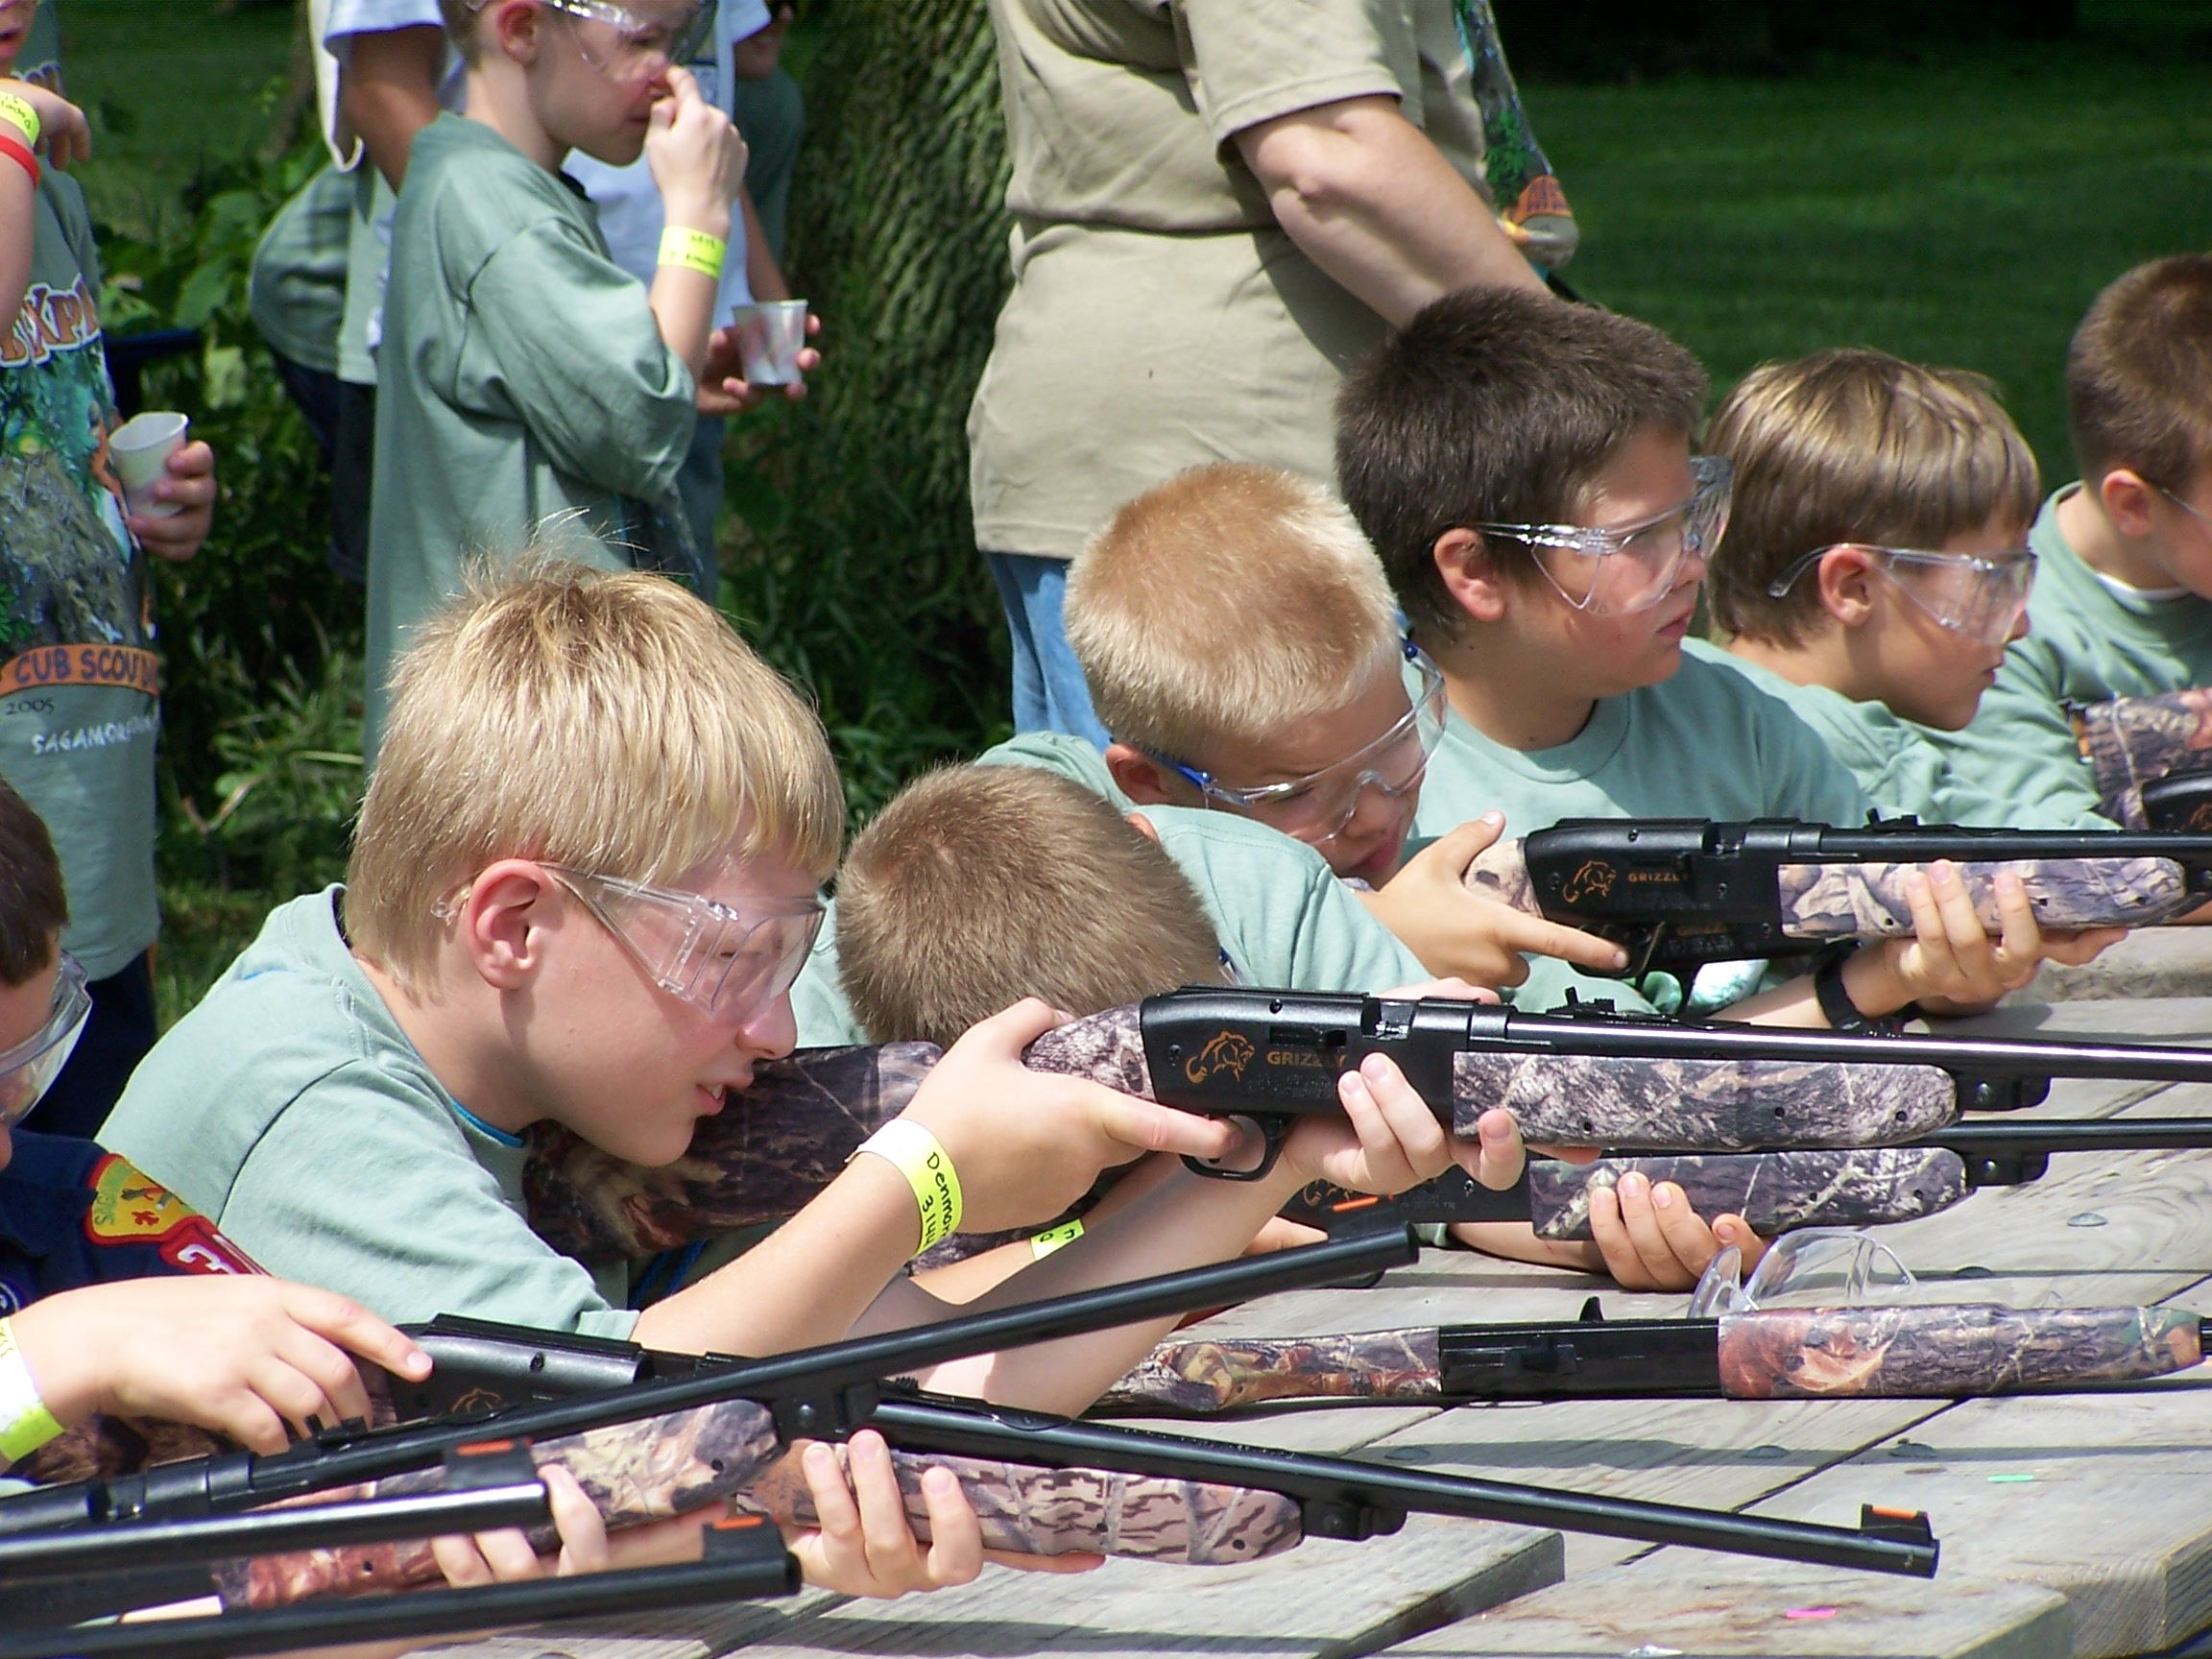 BB gun safety & shooting